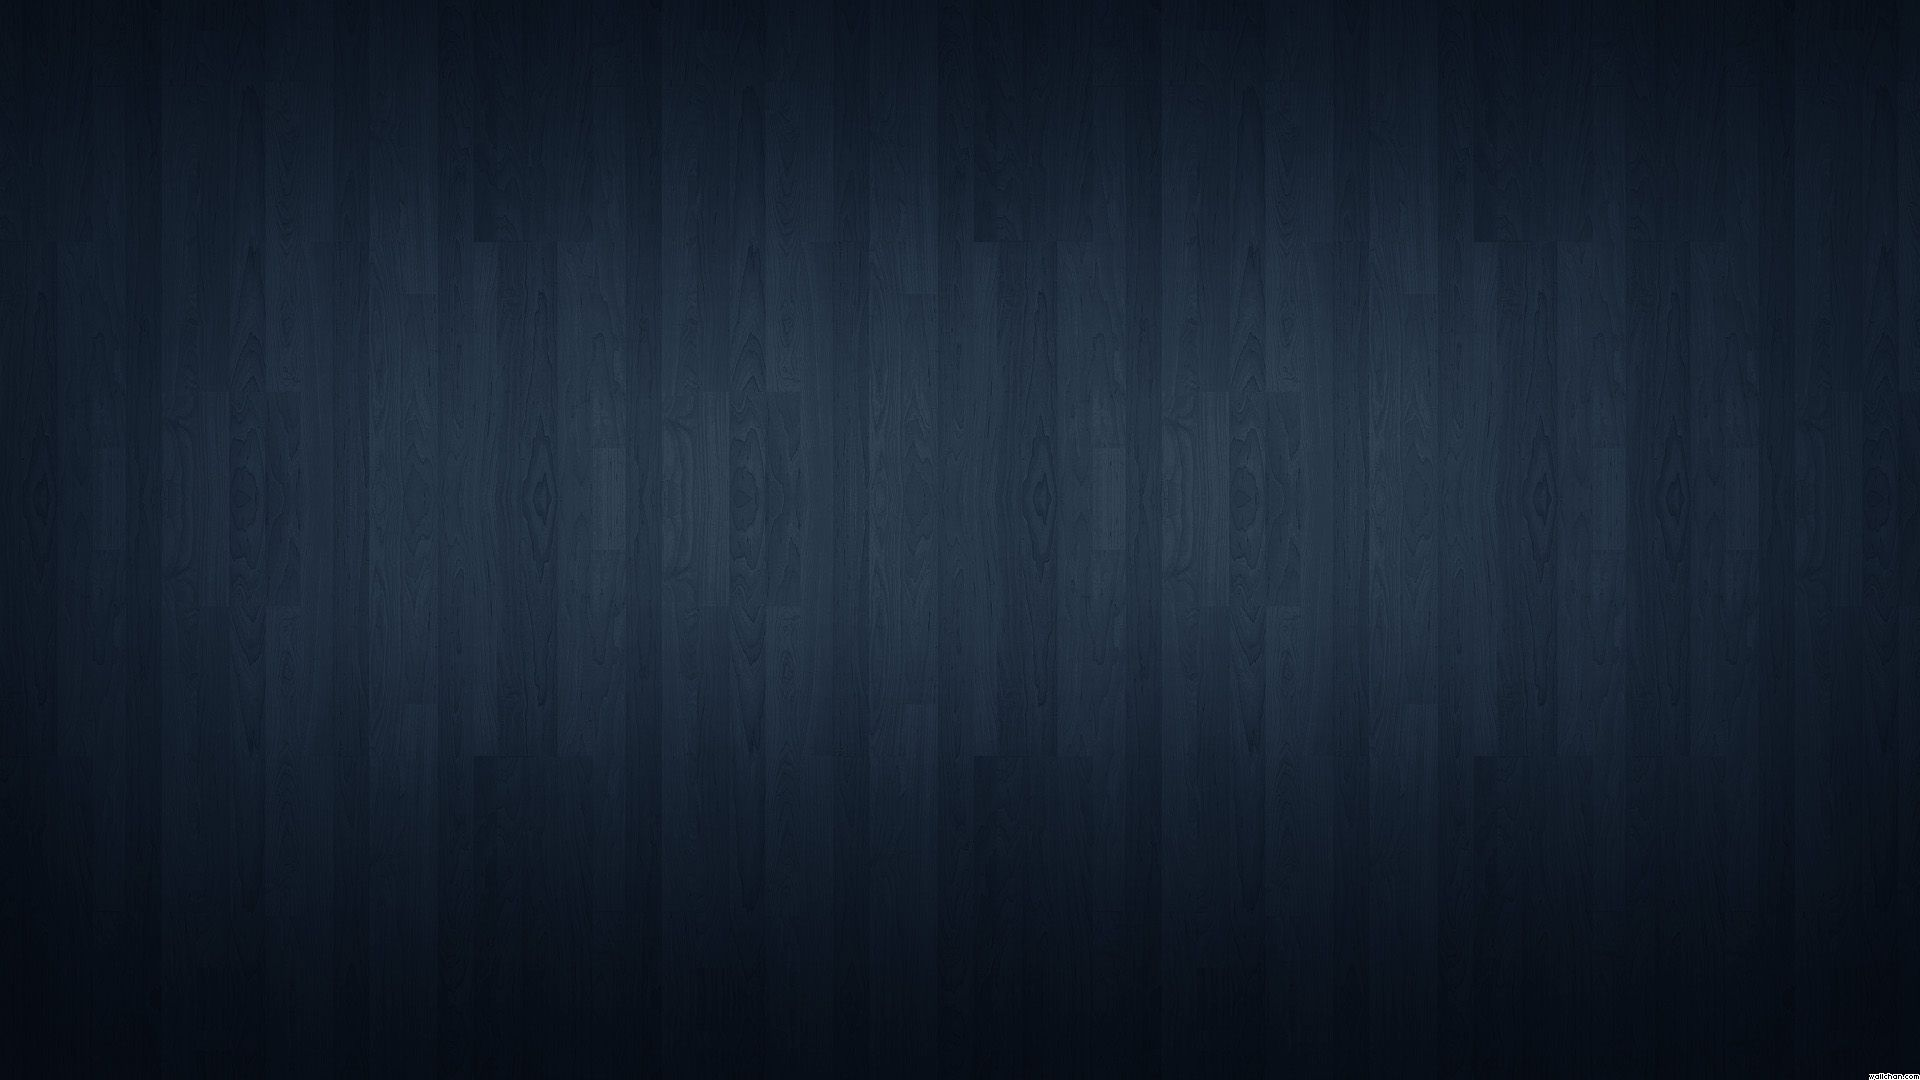 Black Pattern Wallpapers Top Free Black Pattern Backgrounds Images, Photos, Reviews